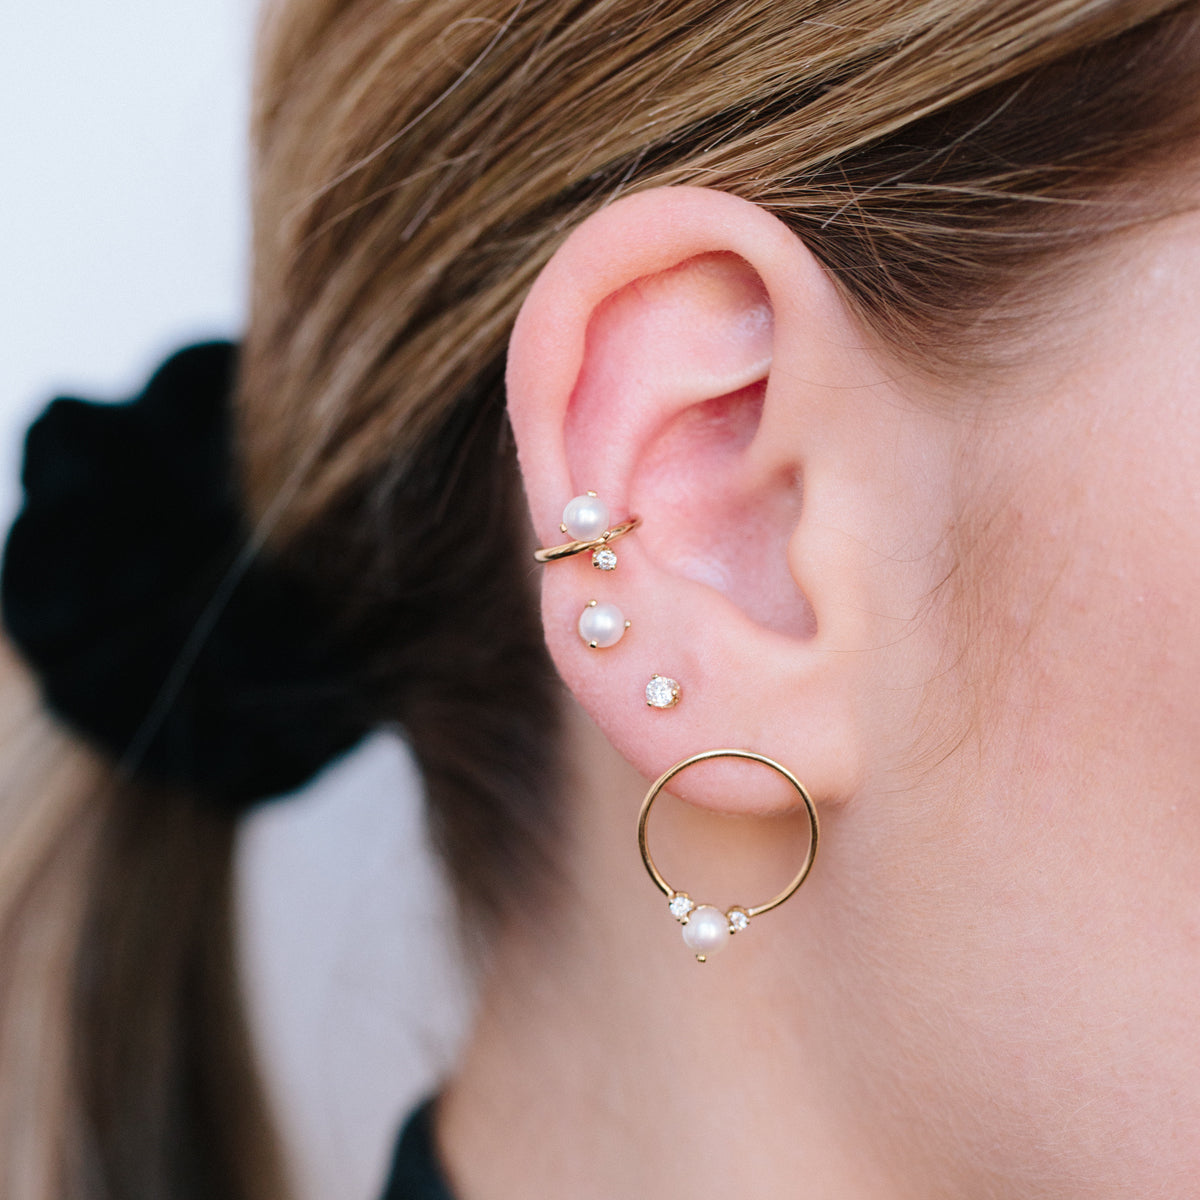 2 Drop Gift for Her Round Pearls 14K Pearl Dangle Earrings 14K Yellow Gold Pale Pink Natural Circl\u00e9 Pearl Earrings